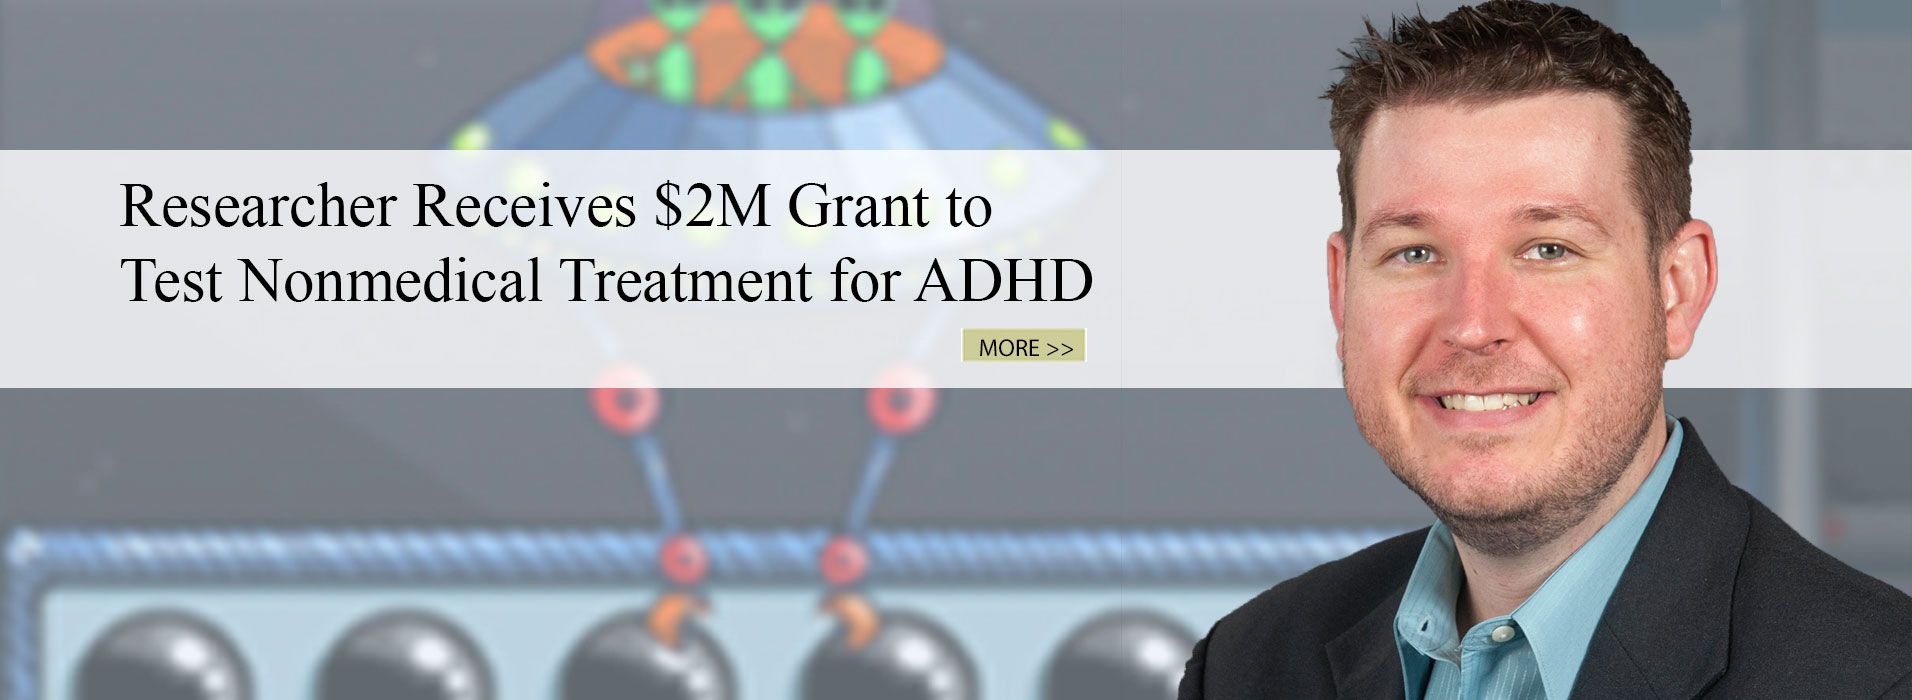 Researcher Receives $2M Grant to Test Nonmedical Treatment for ADHD